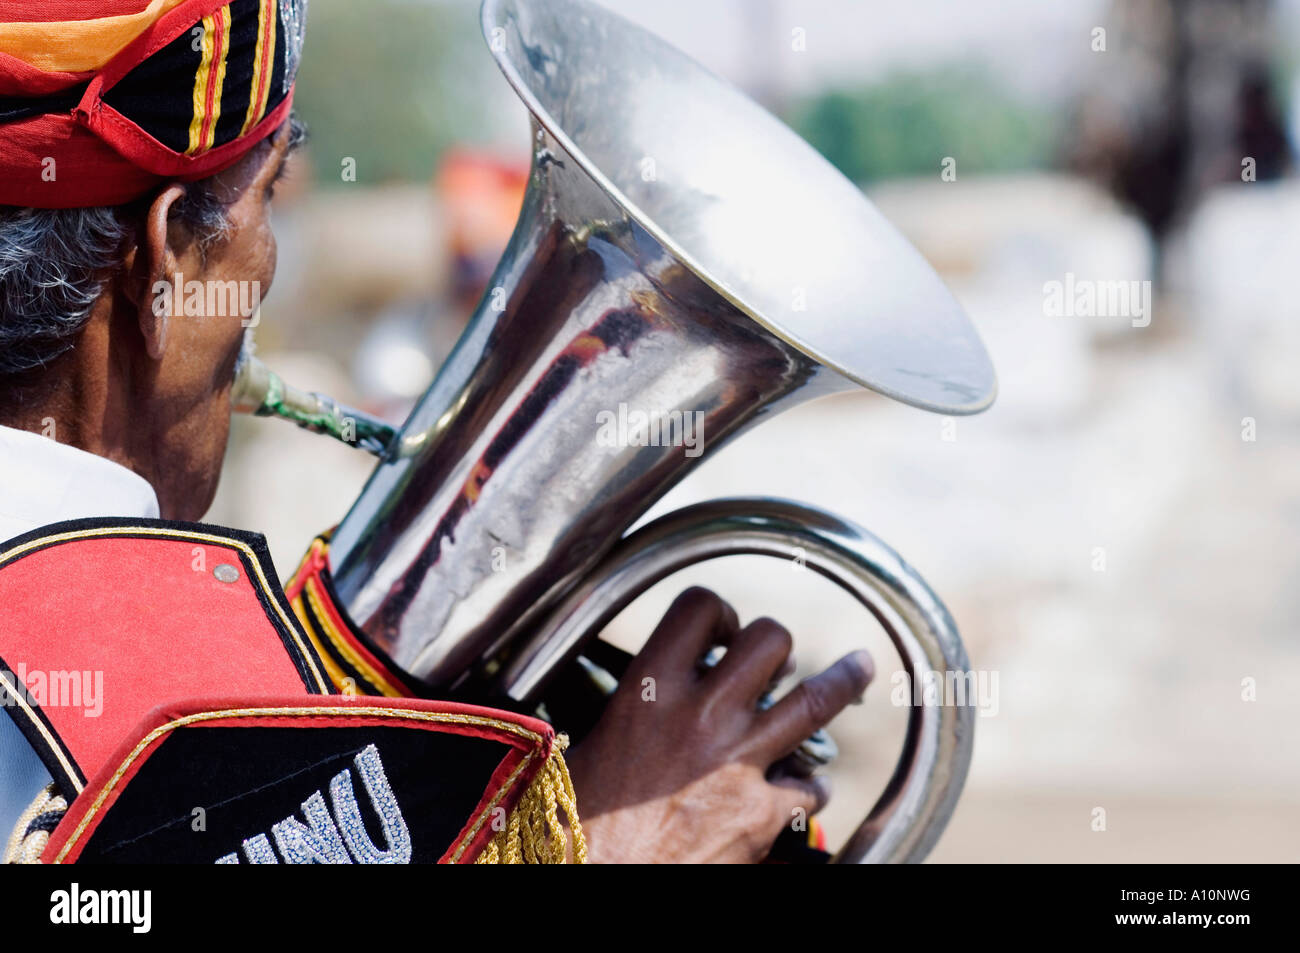 Rear view of a man playing the tuba, Jaipur, Rajasthan, India - Stock Image